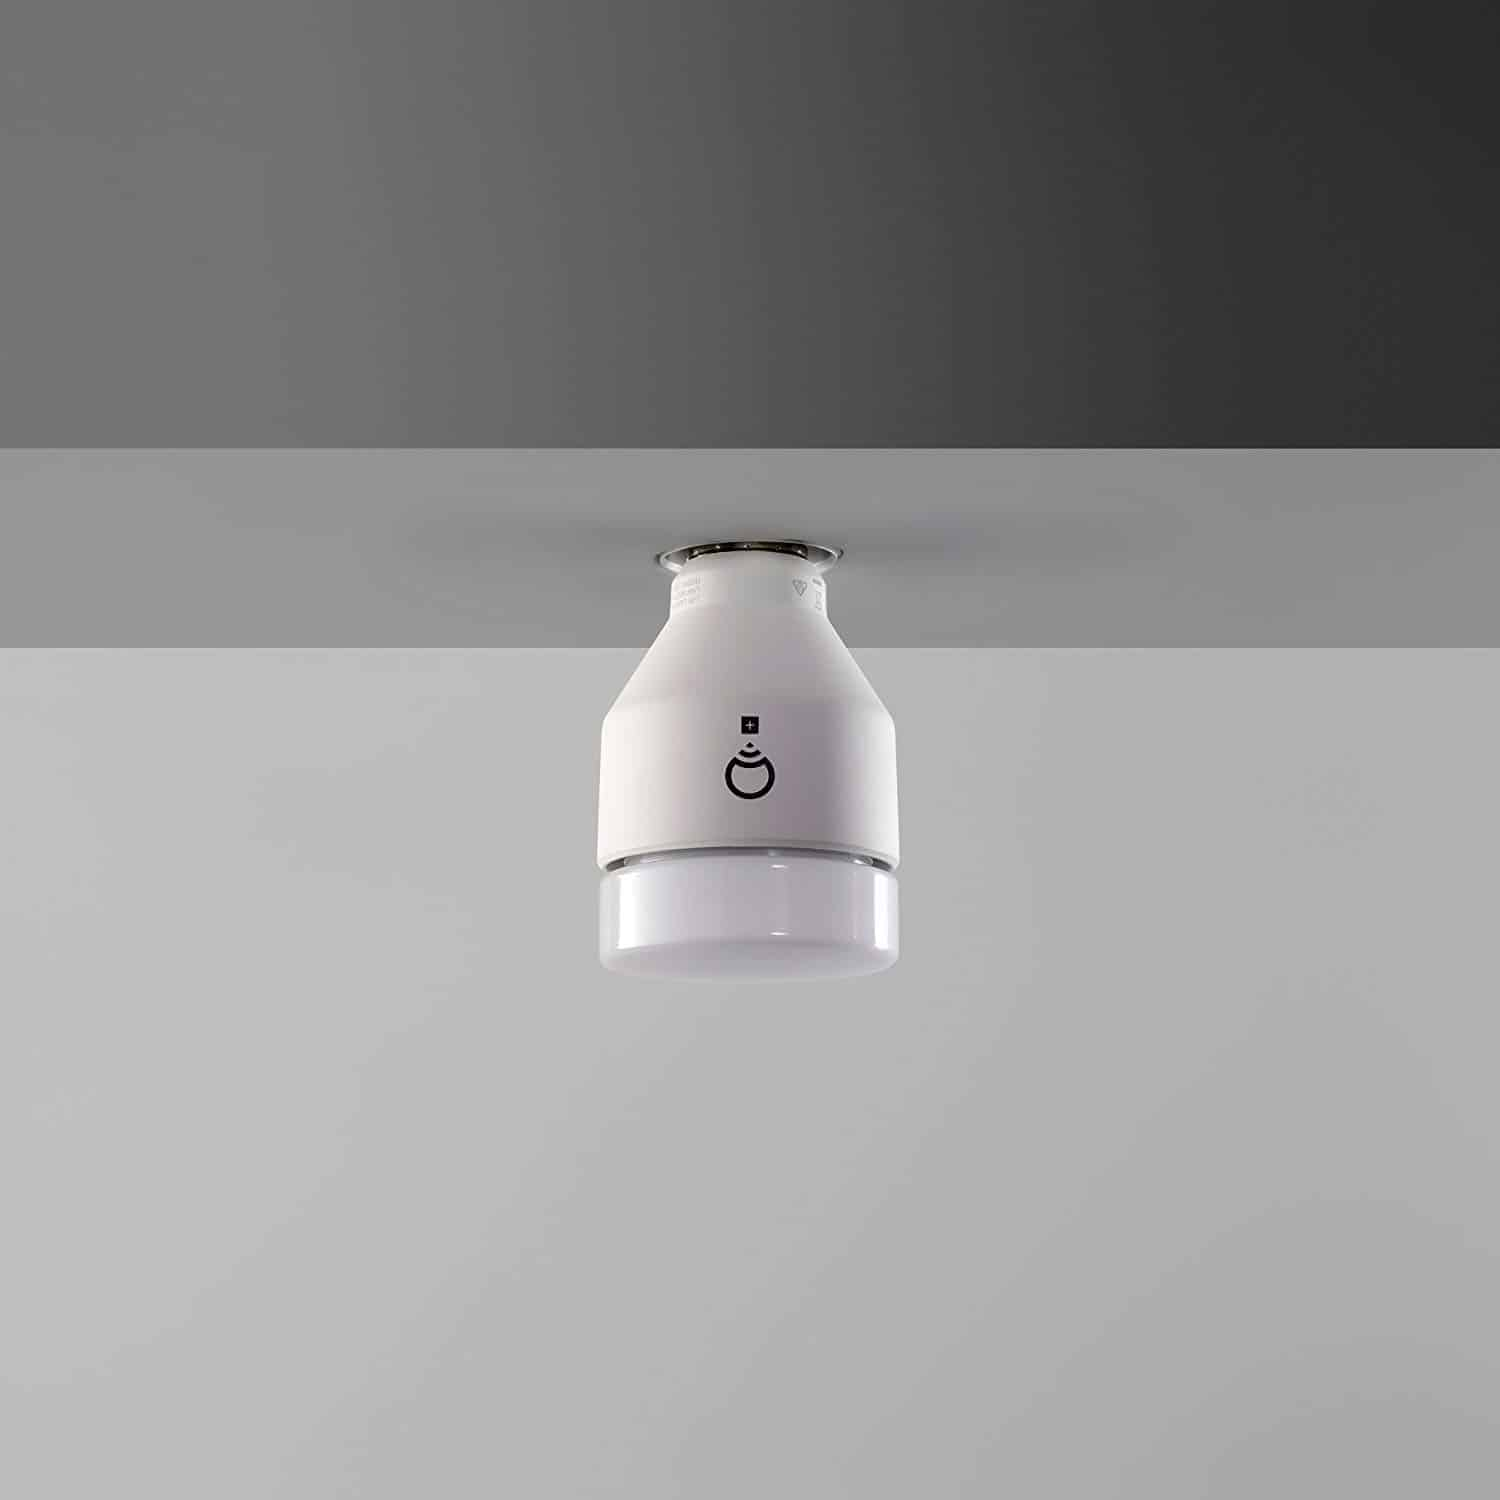 LIFX_Security_A19_features_1